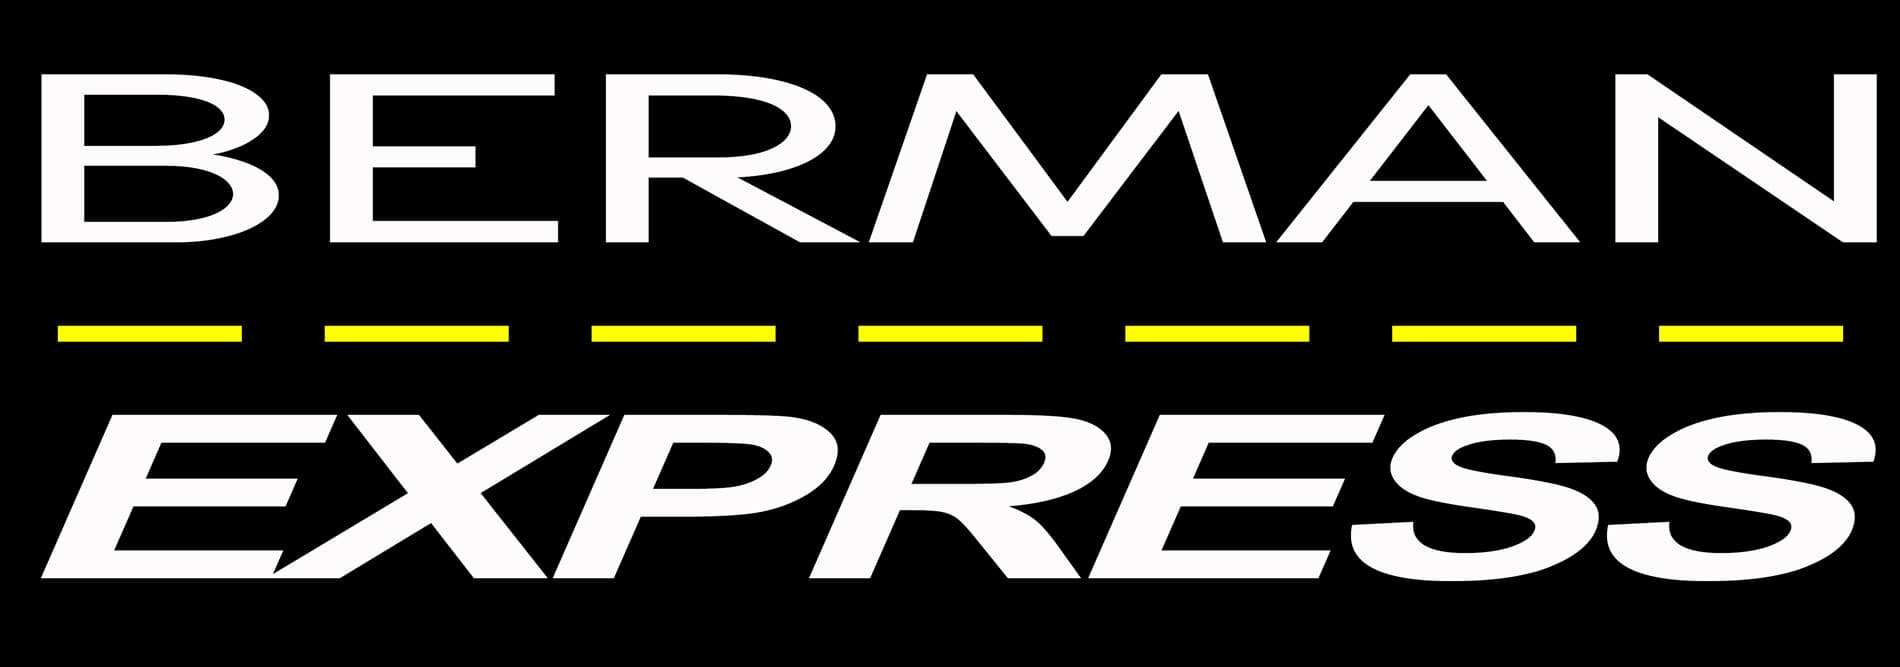 Welcome to Car Buying Made Simple. Save Time & Buy Online With Berman Express!